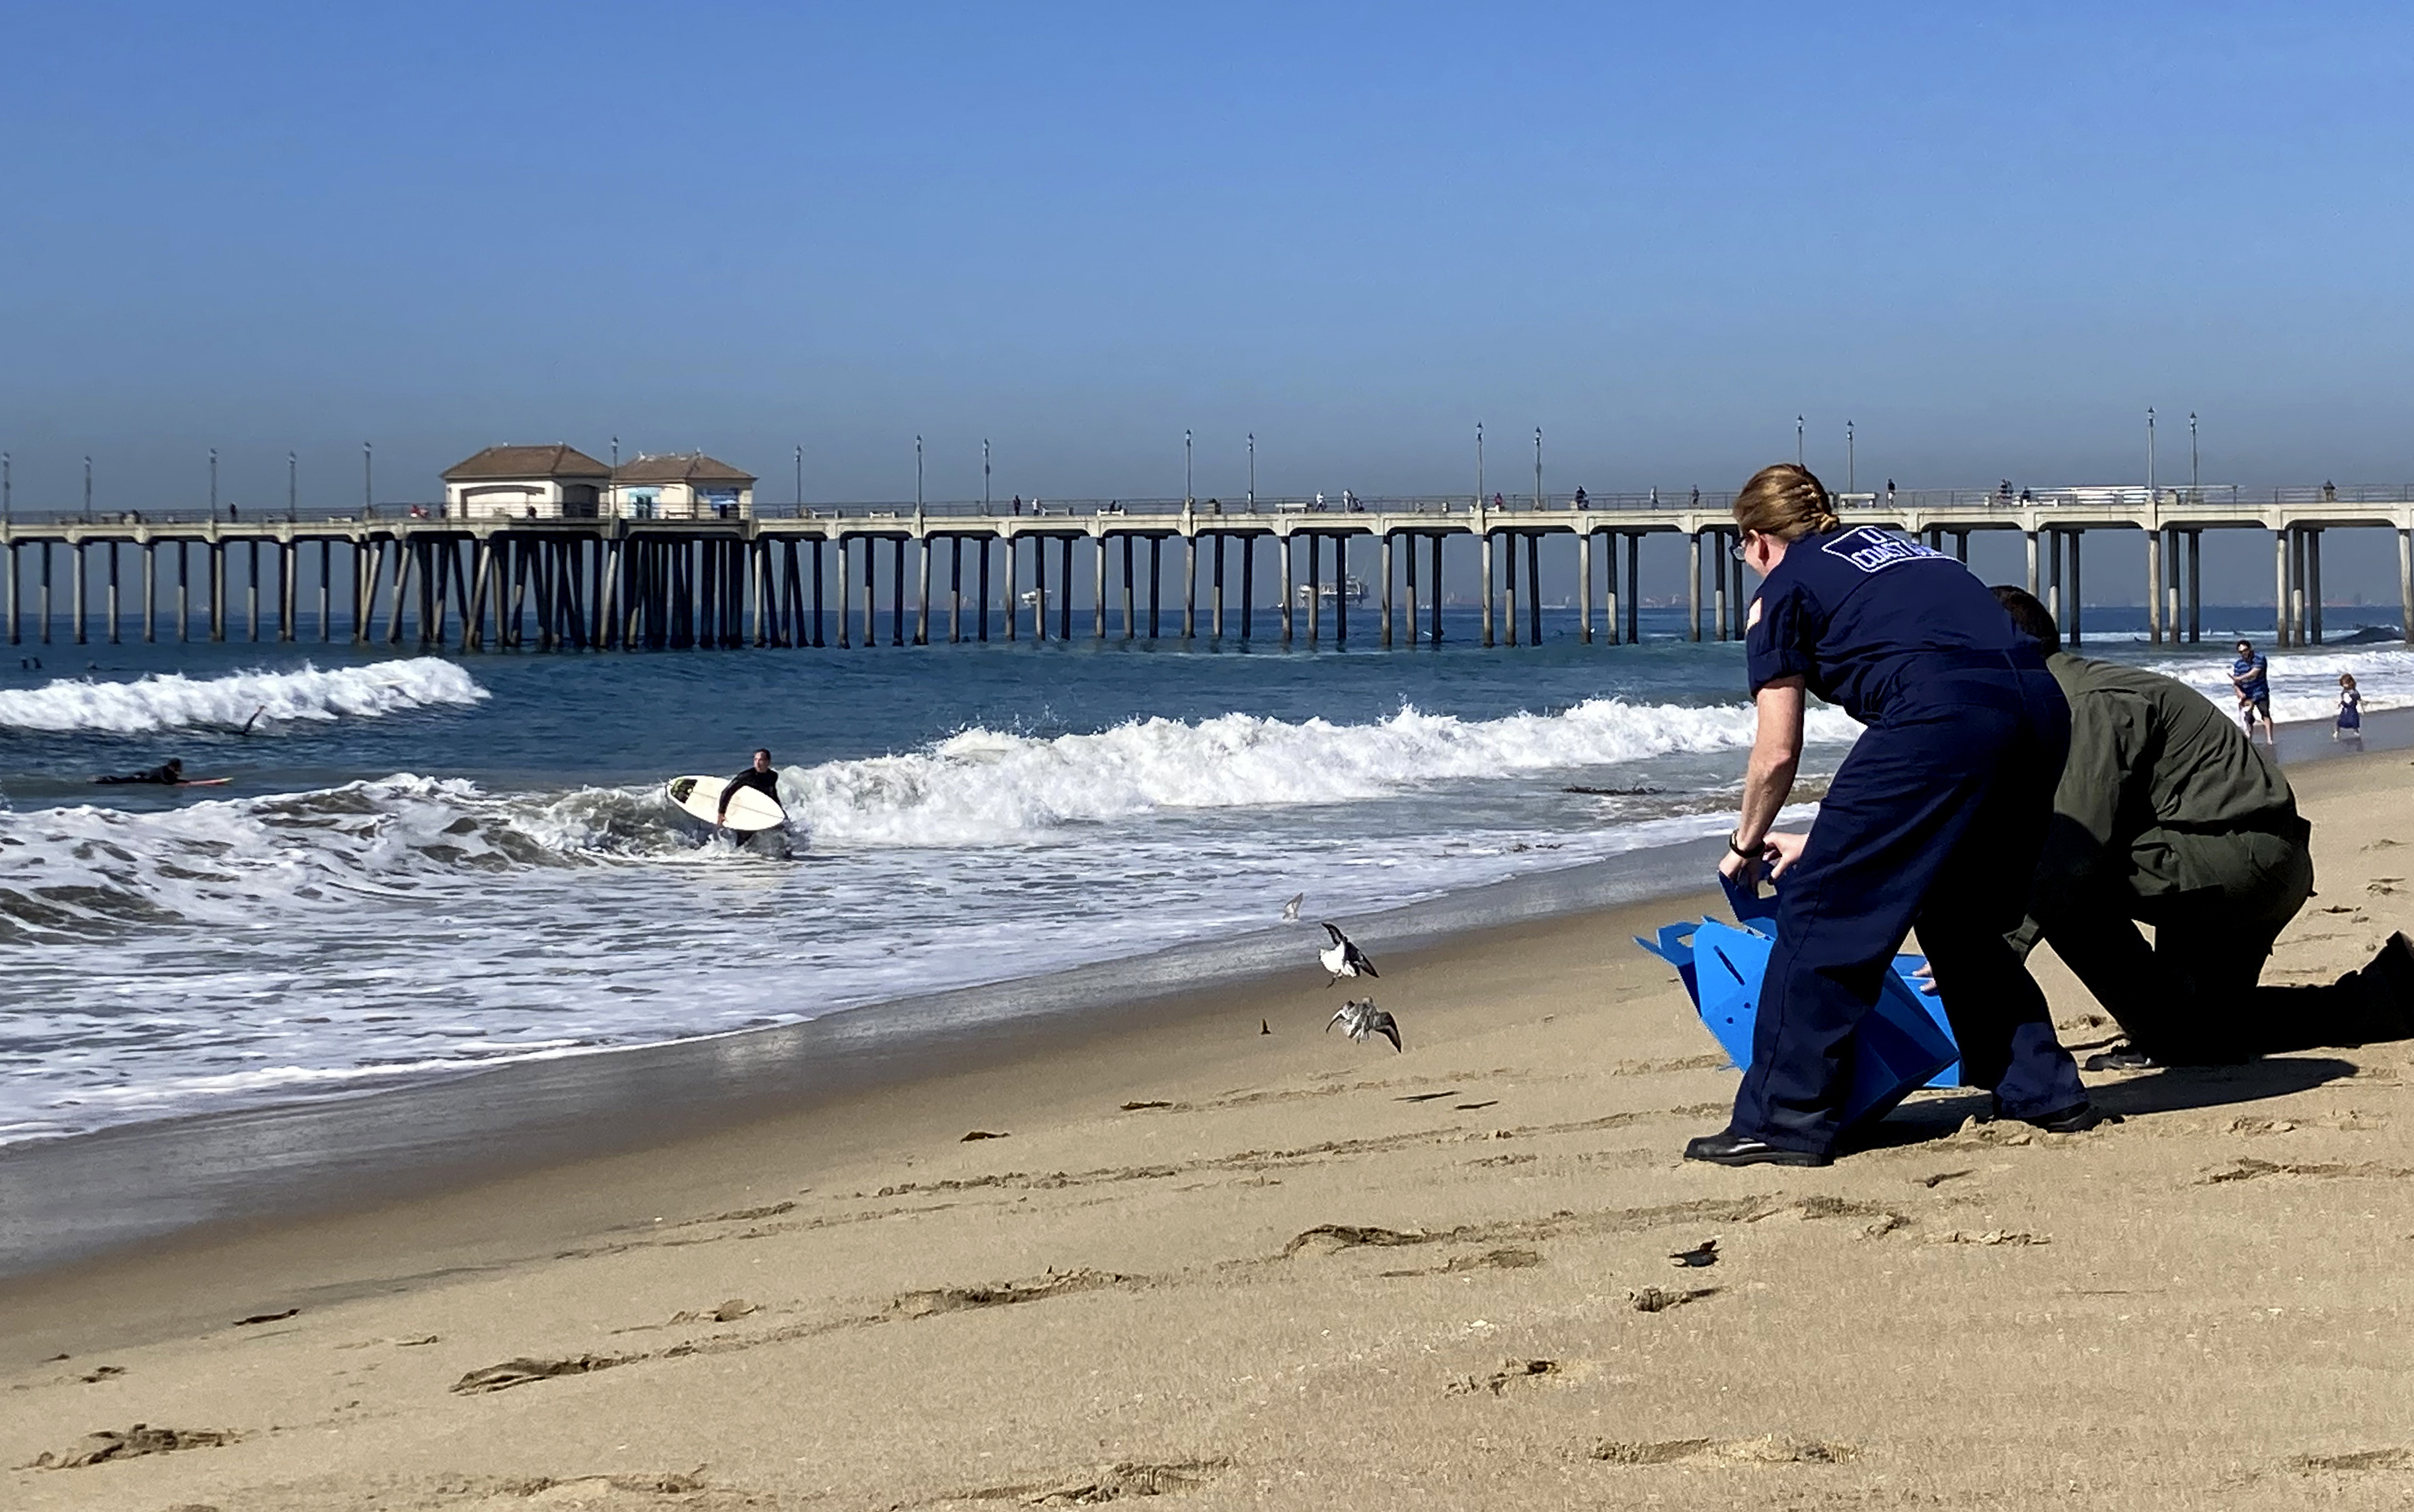 Environmentalists Want President to Stop Offshore Drilling After Huntington Beach Oil Spill